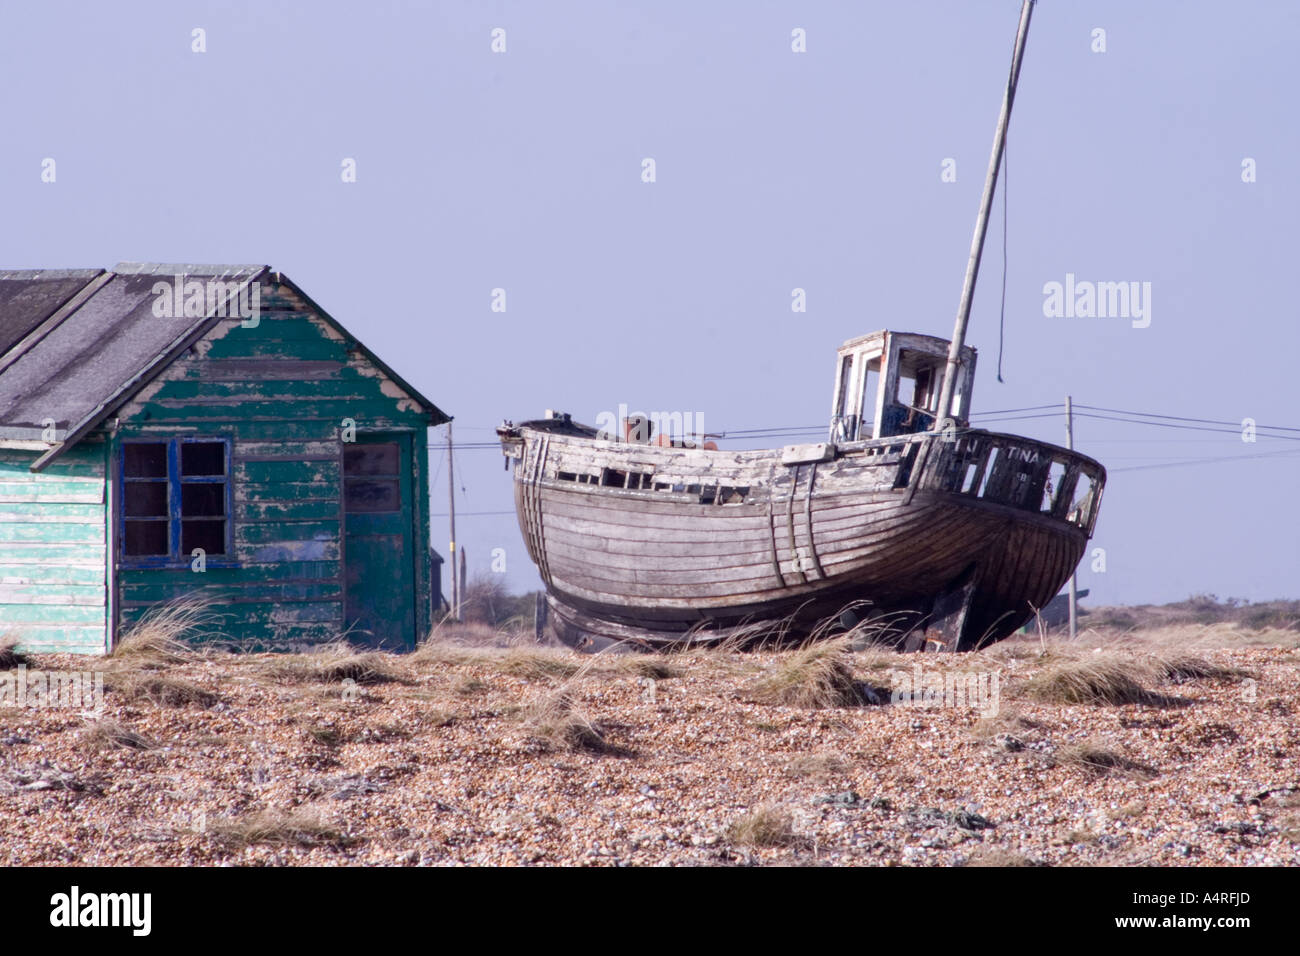 Abandoned wooden fishing boat next to a dilapidated green hut on the shingle beach at  Dungeness in Kent. Stock Photo